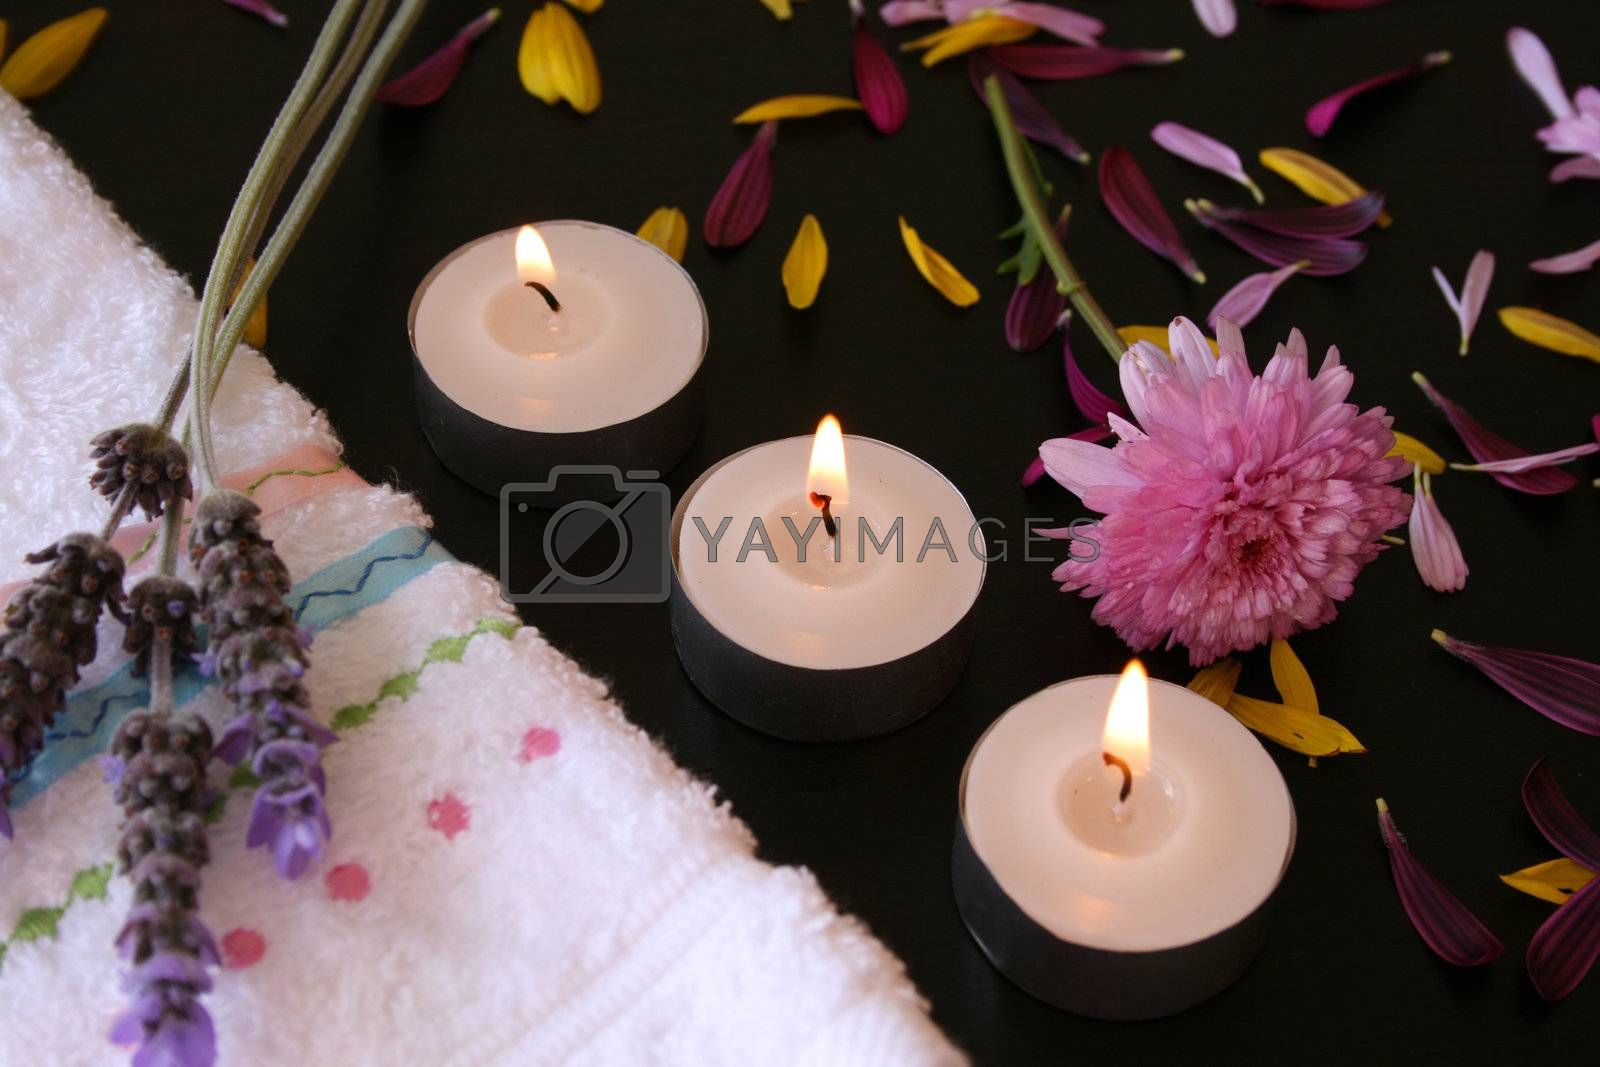 Three teelights next to a hand towel with fresh flowers and petals